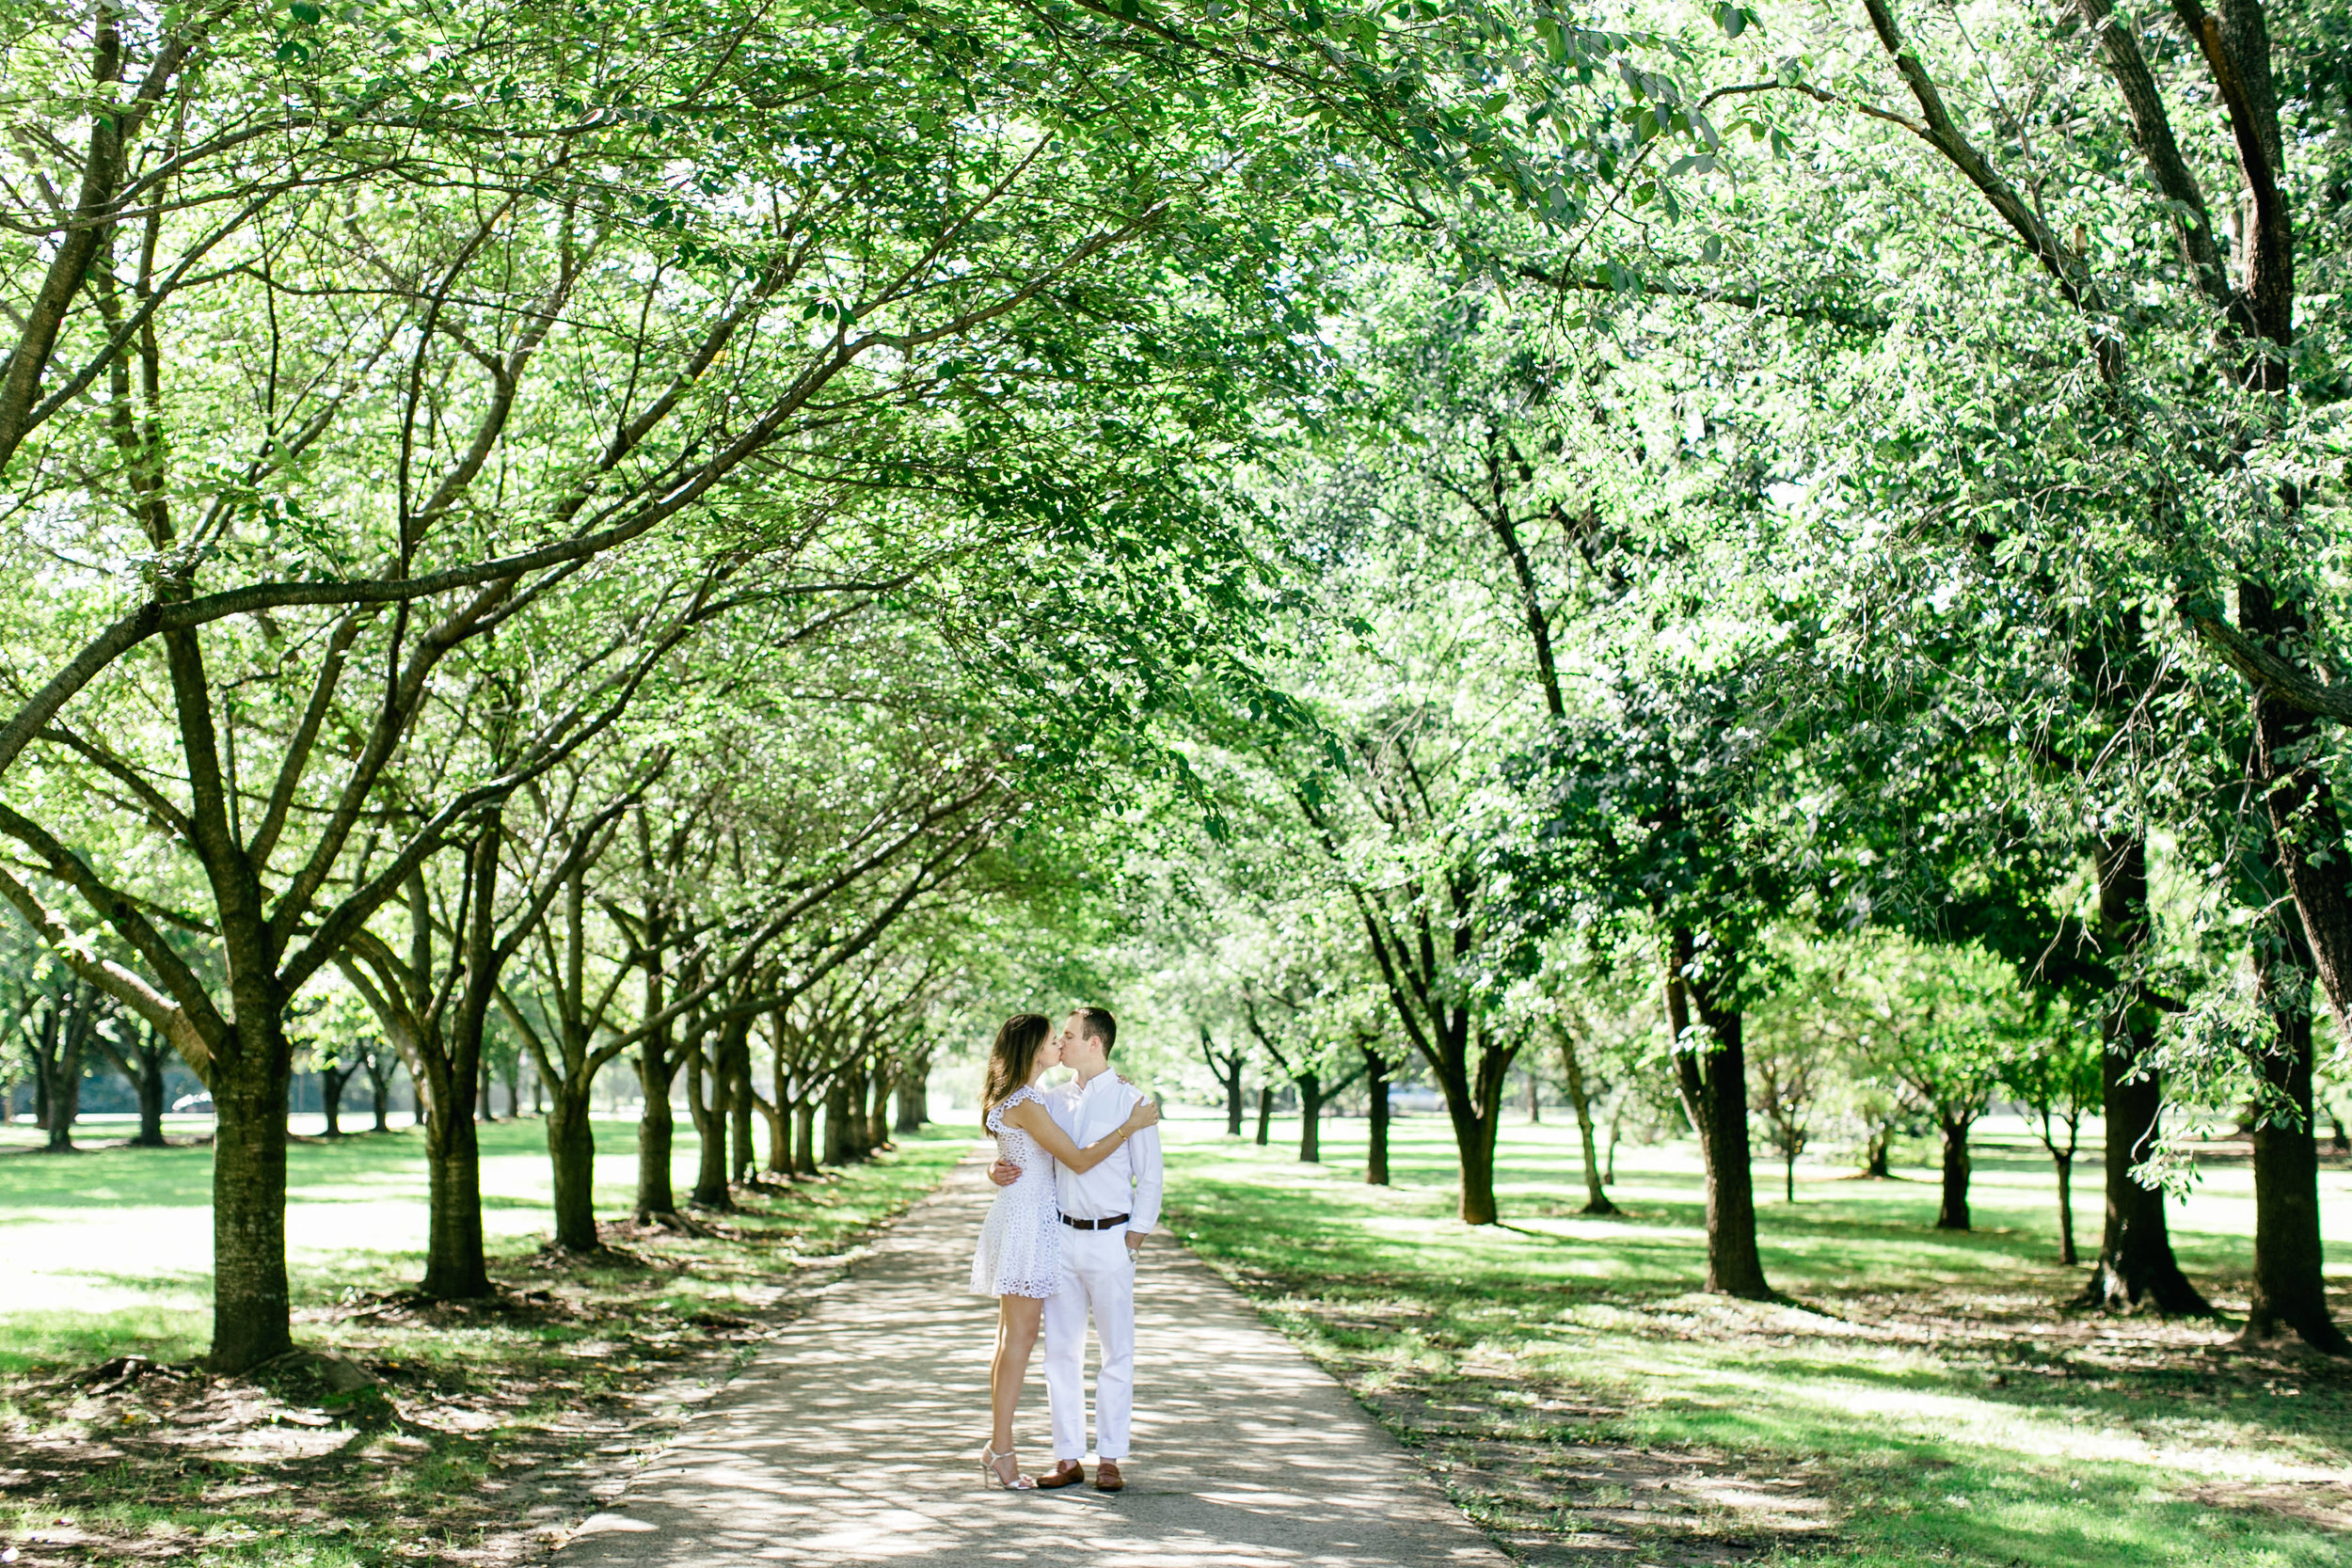 photography-family-natural-candid-engaged-fairmount-philadelphia-wedding-horticultural center-modern-lifestyle-06.JPG